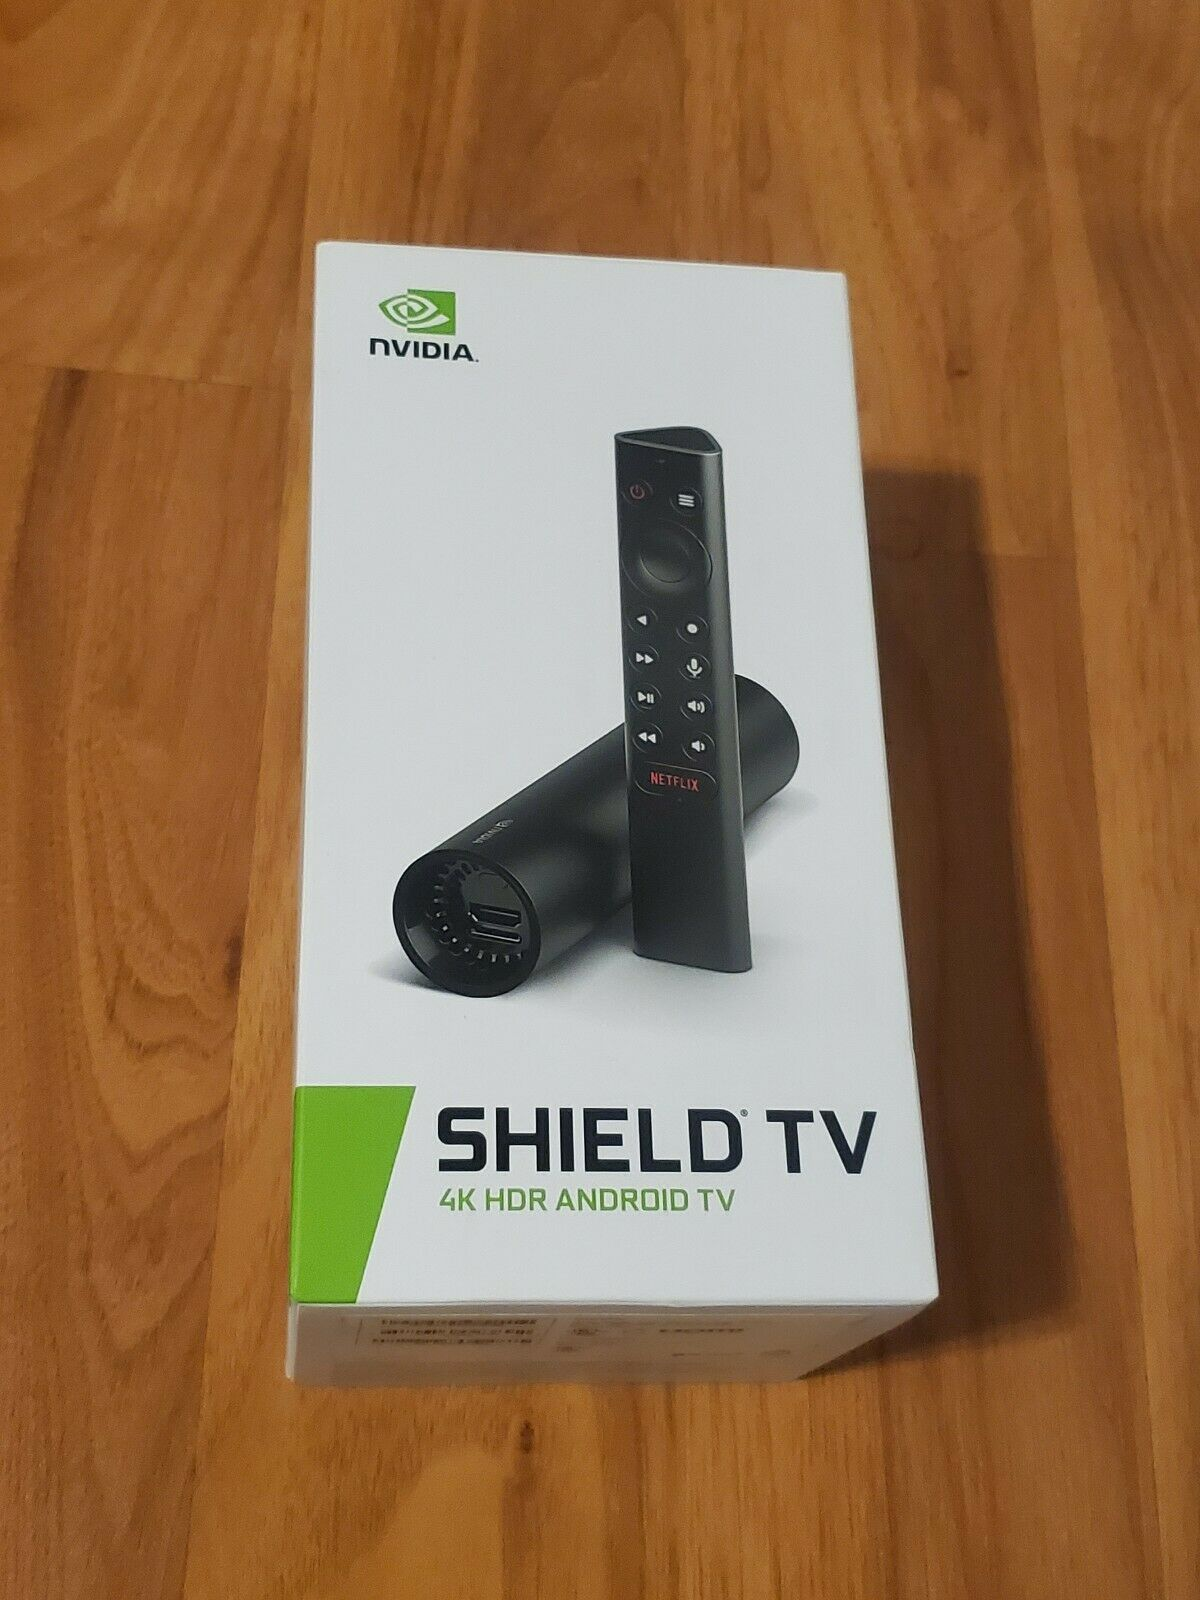 NVIDIA - SHIELD Android TV -8GB - 4K HDR Streaming Media Player with Google android google hdr media nvidia player shield streaming with